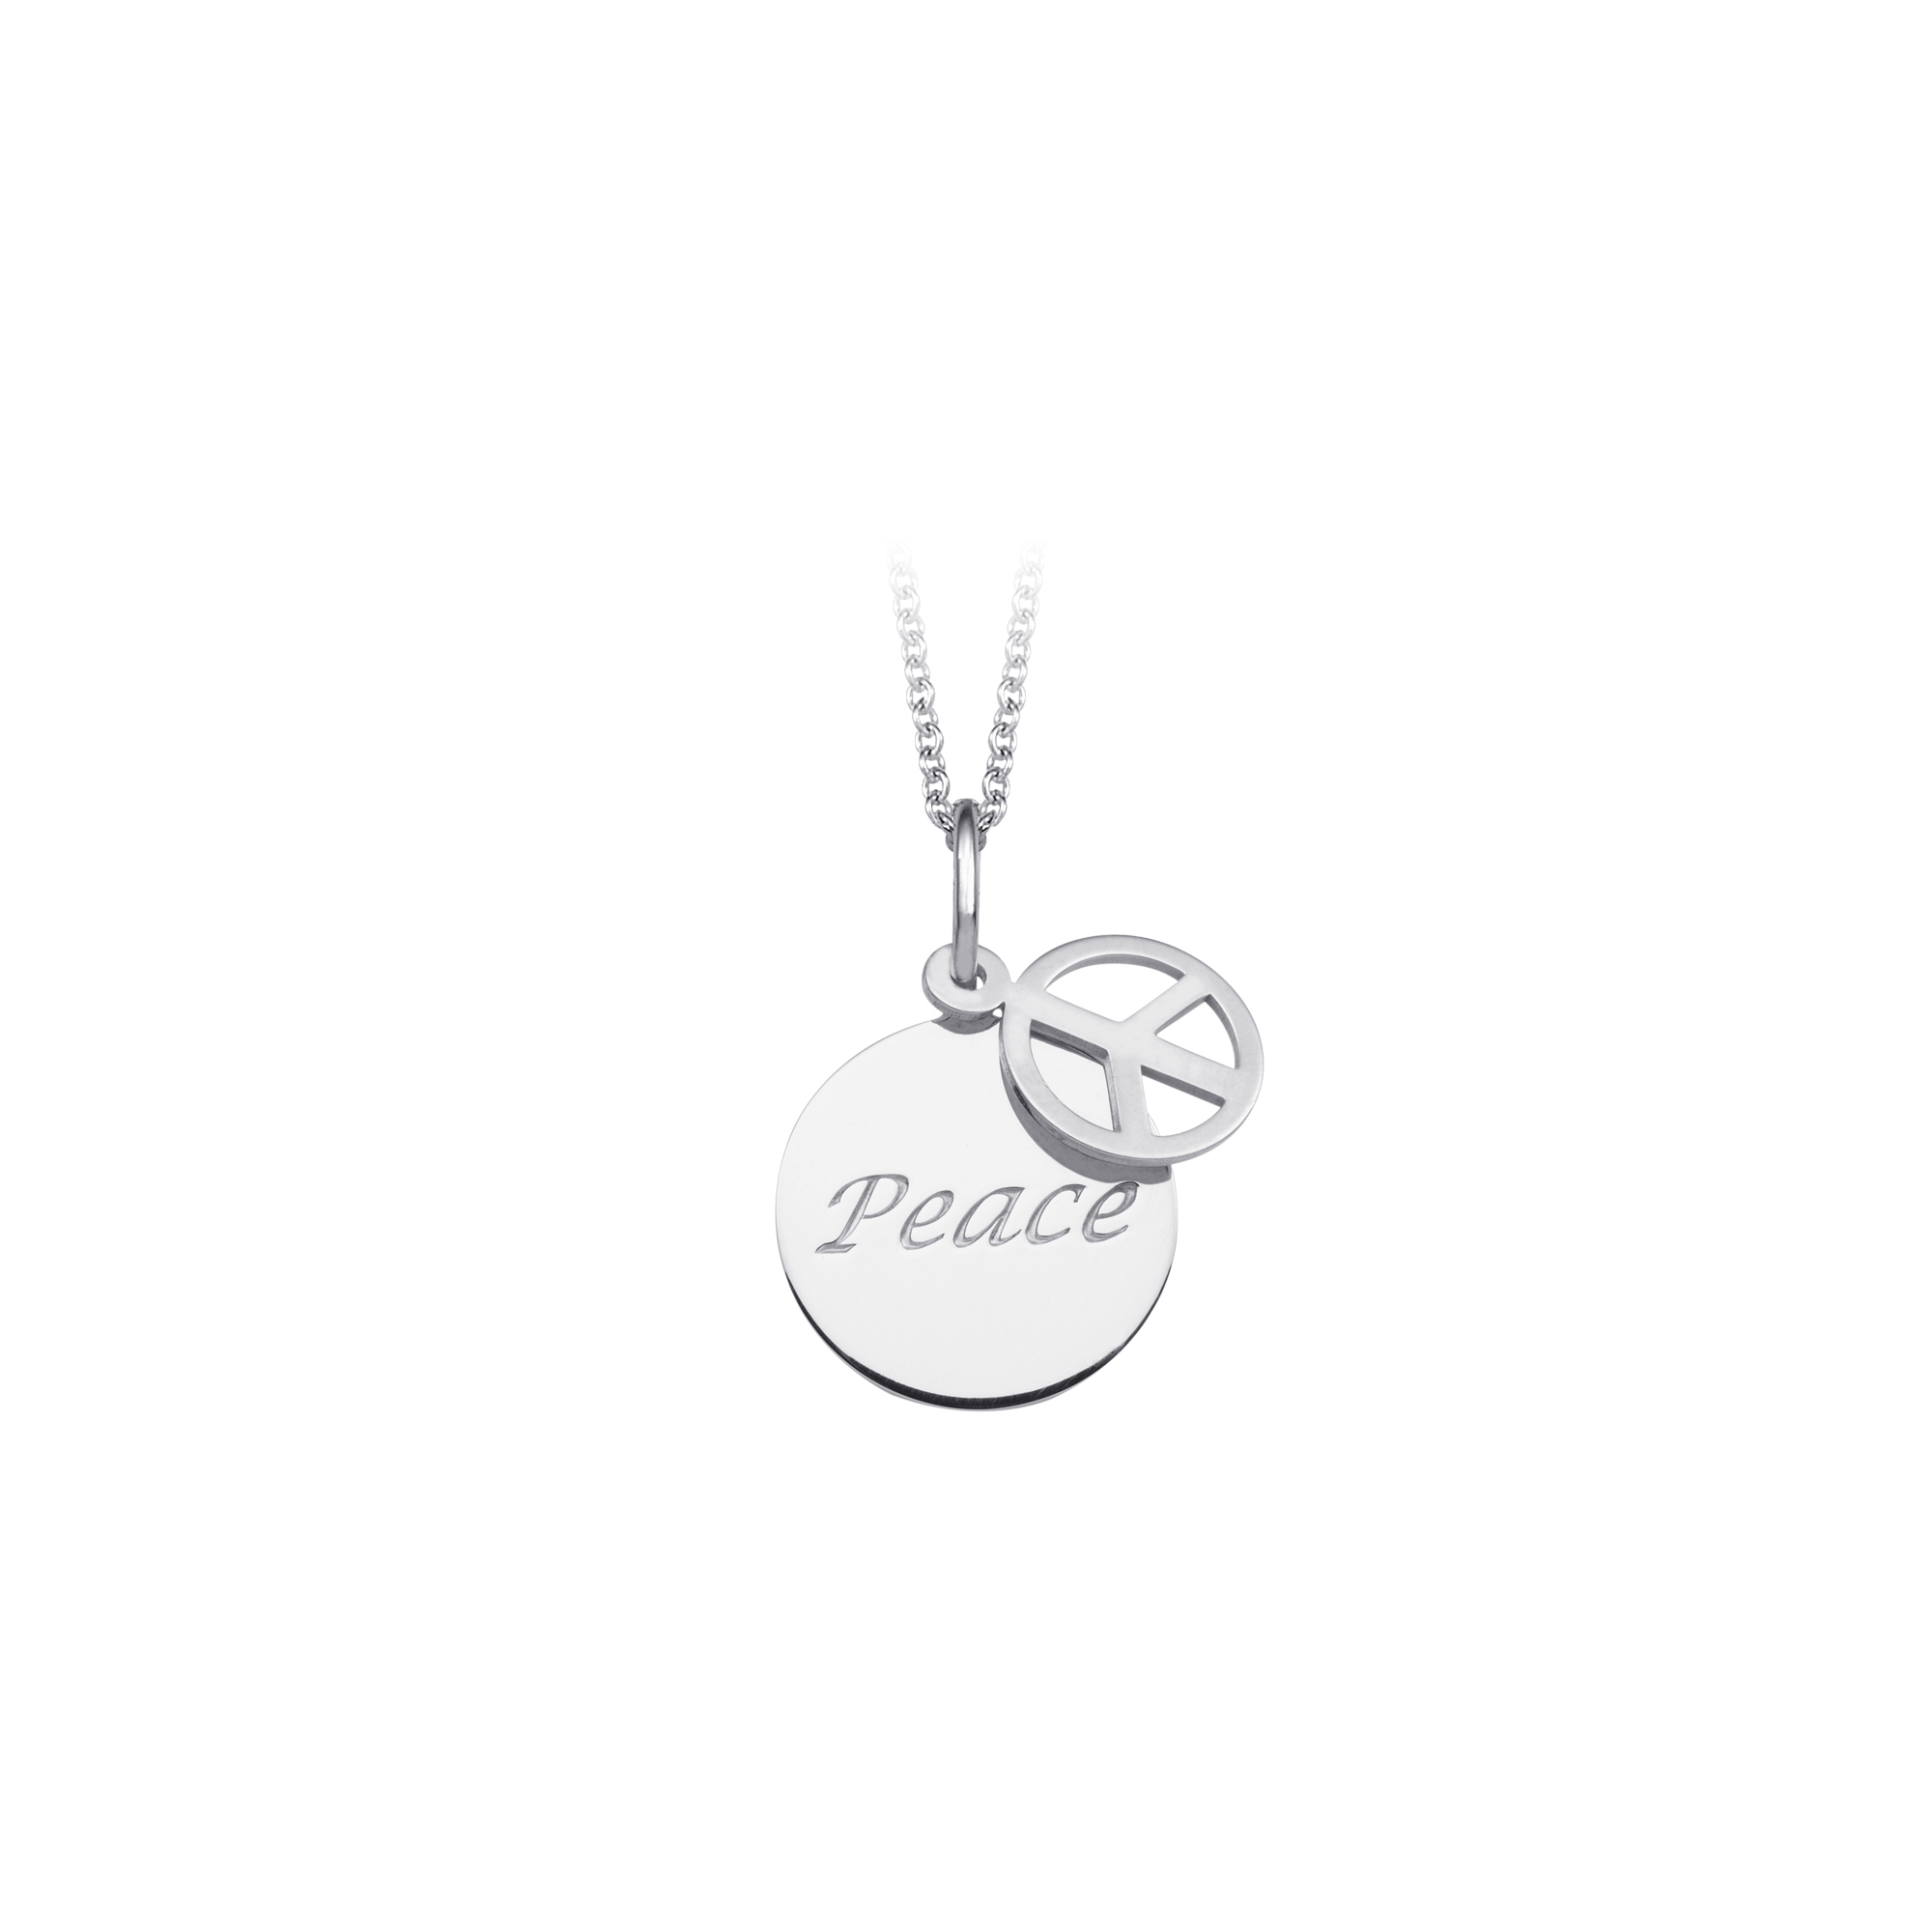 store peace pendant necklace